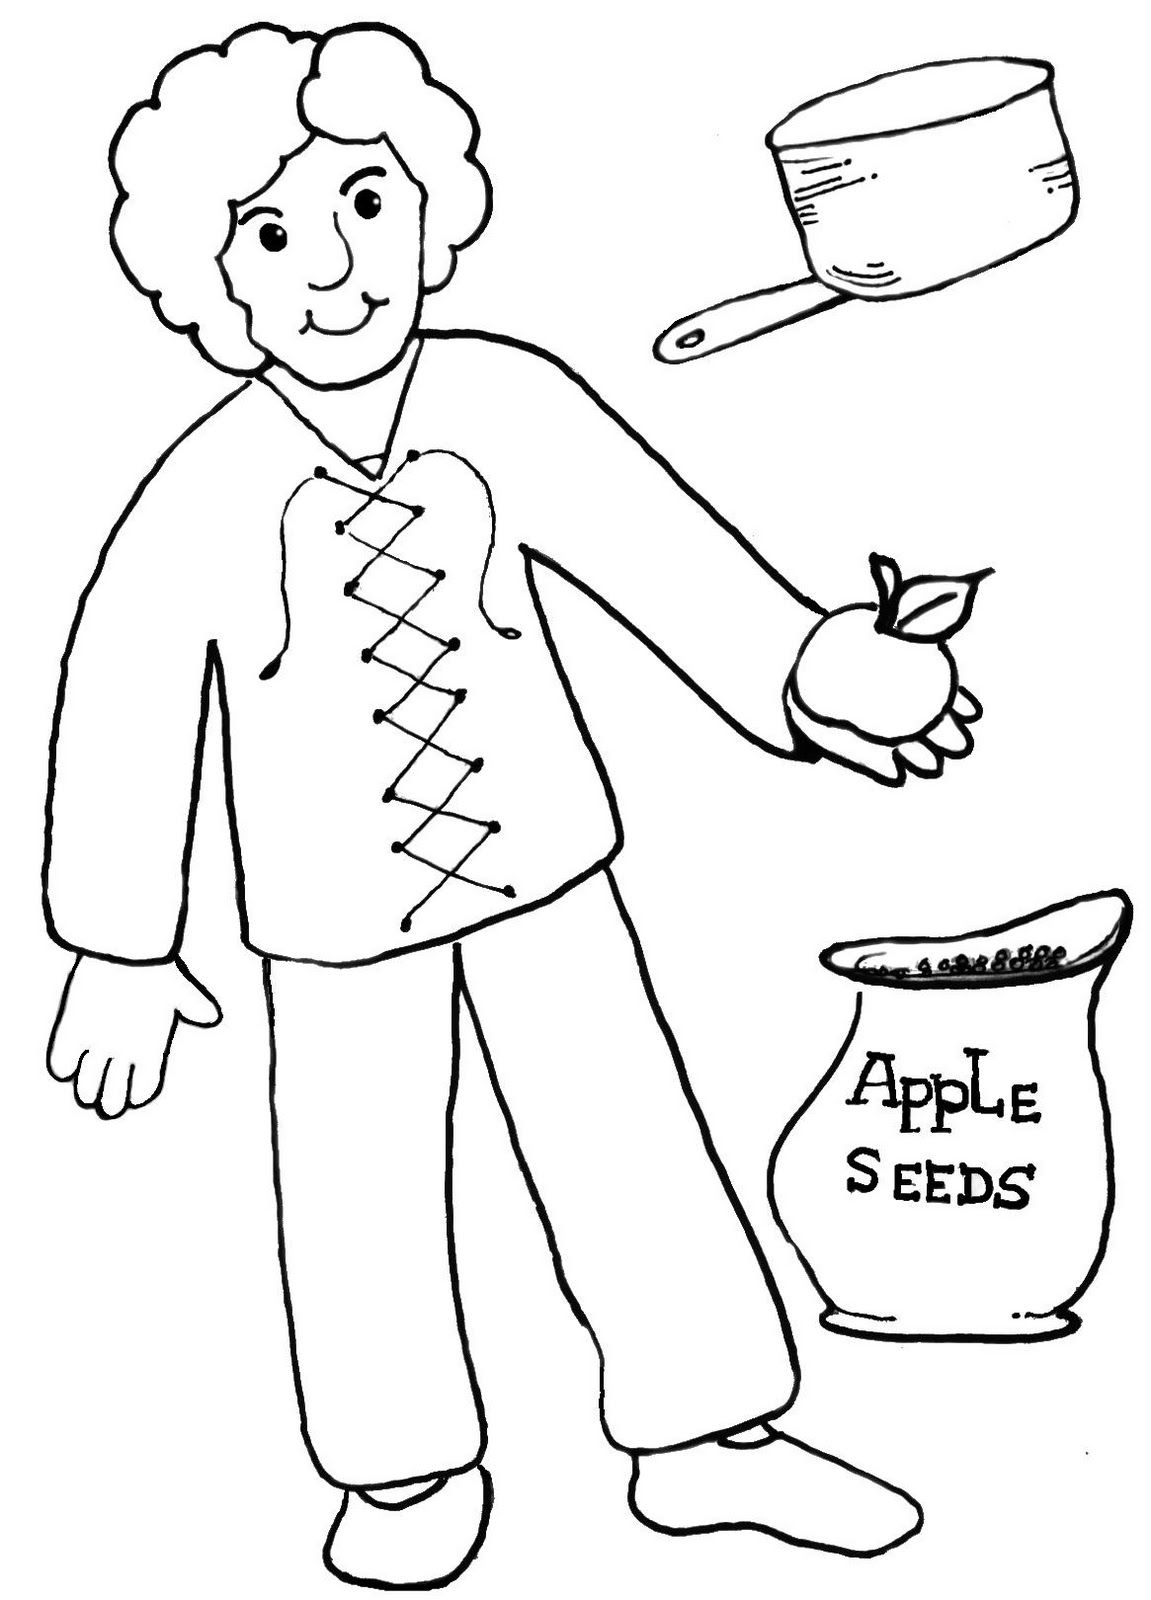 Johnny Appleseed Color Pages Printable